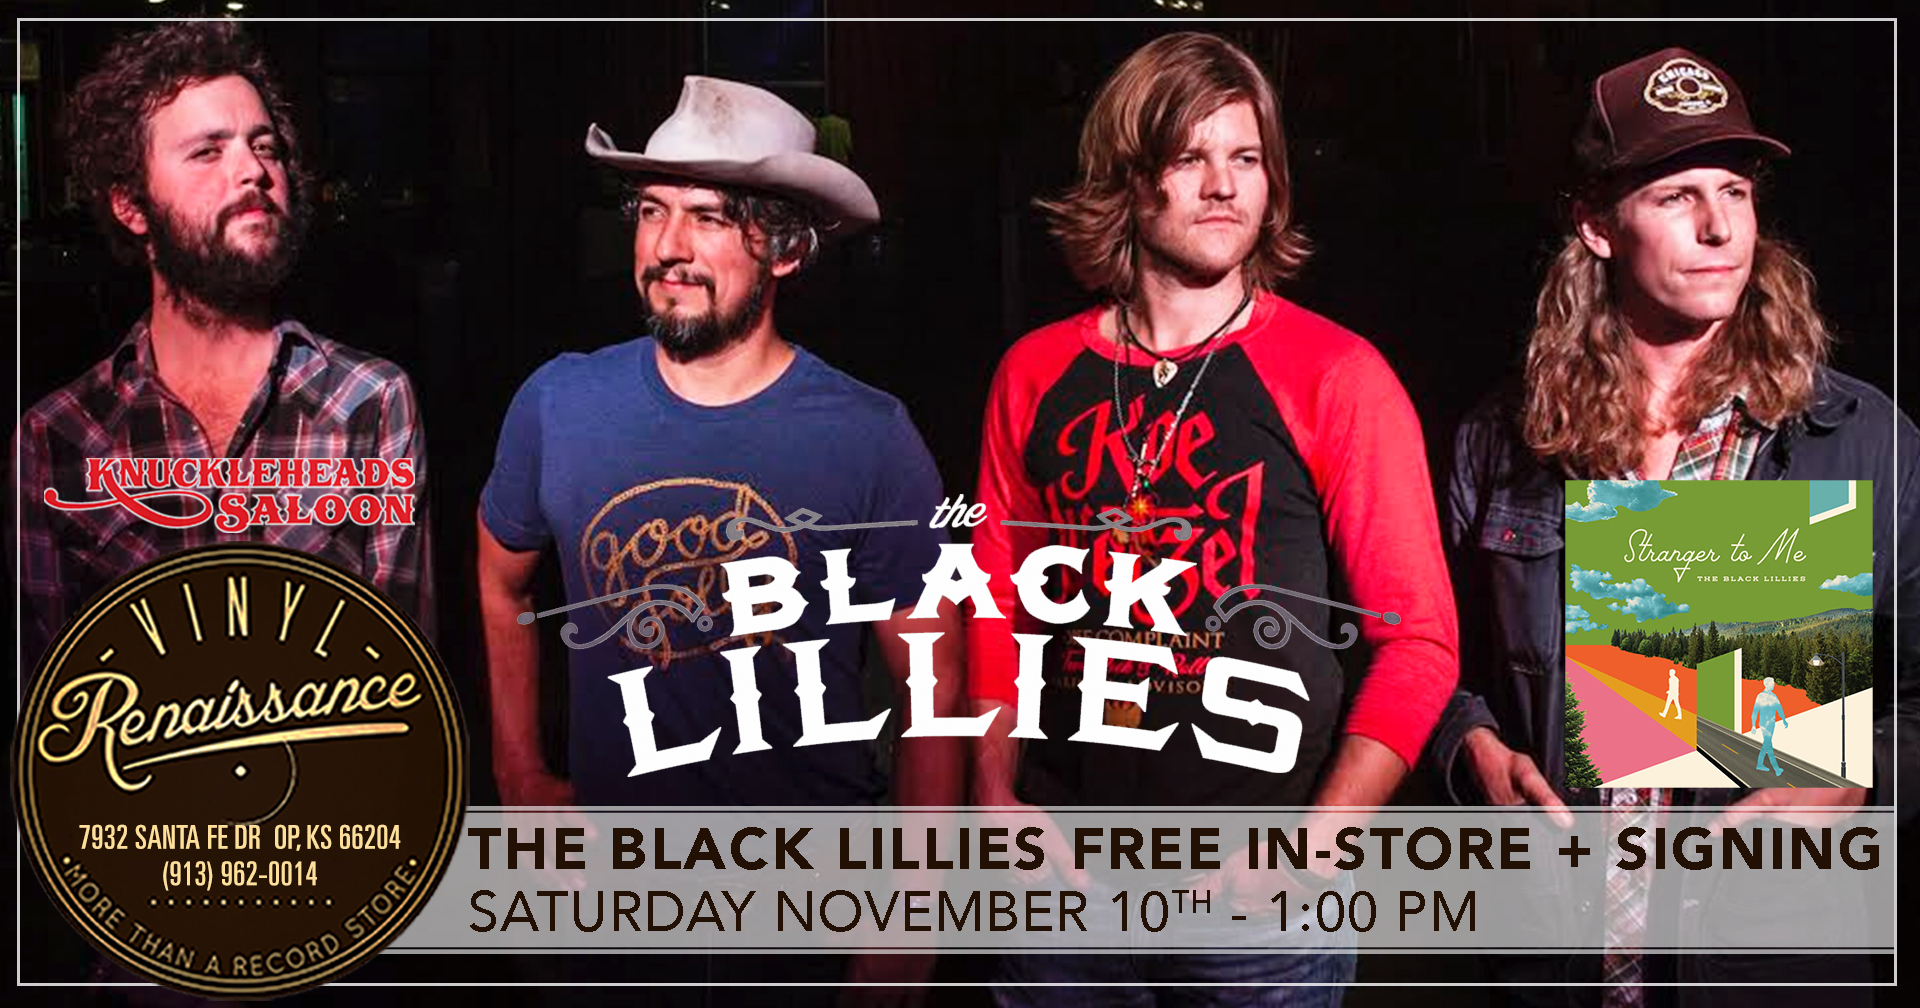 The Black Lillies Free In-Store Performance + Signing